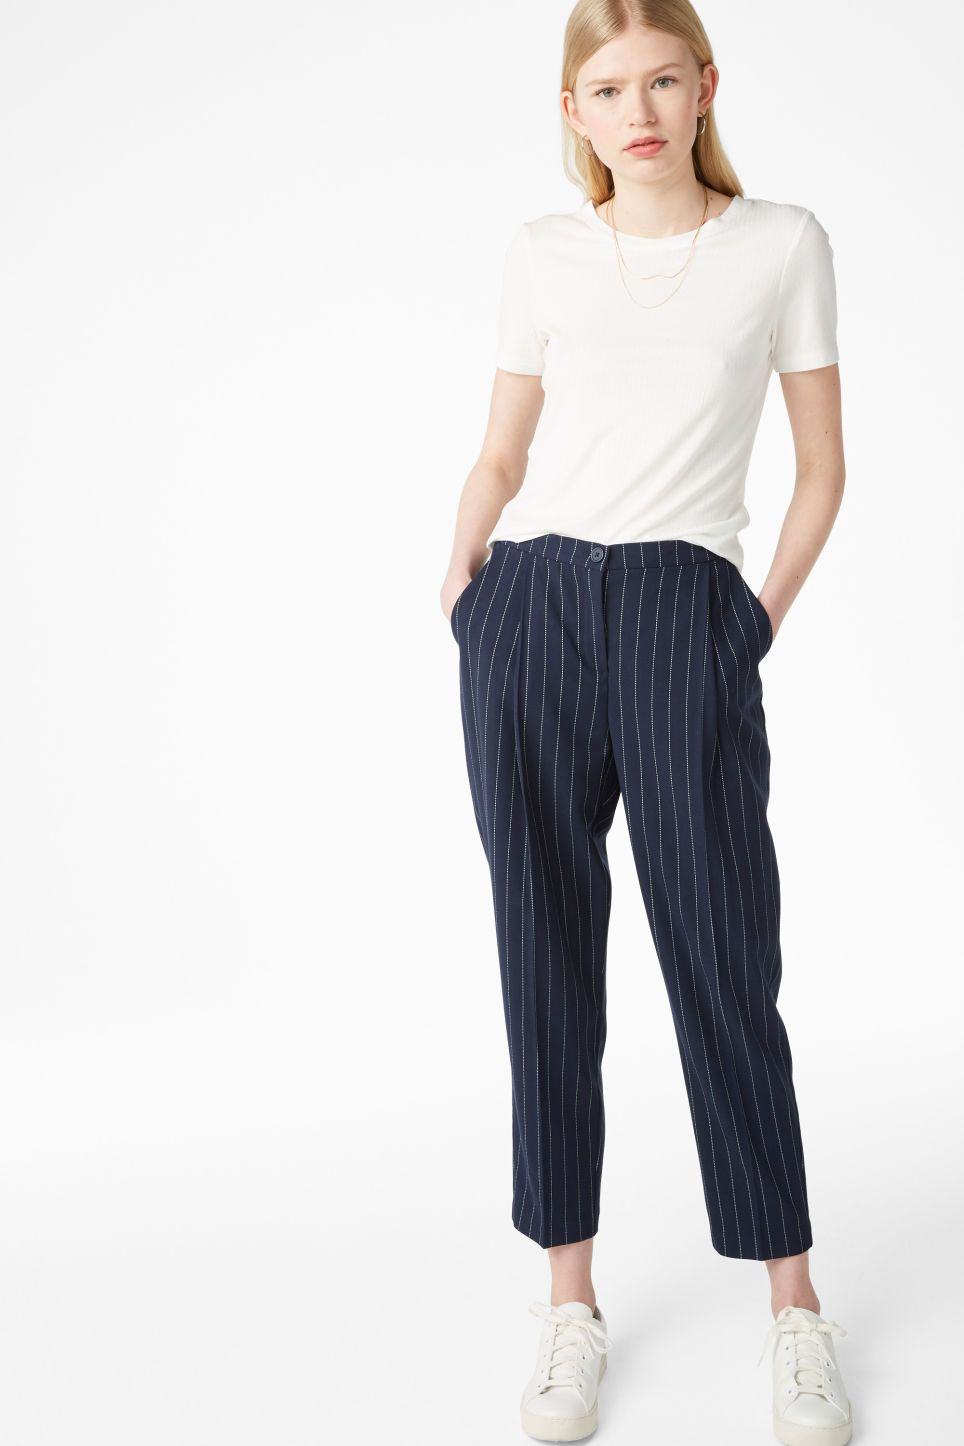 0f87a7e2 Dressy trousers 250 SEK Monki Dressy trousers that are meant to have a  casual-chic, slightly oversize fit. An elasticized waist in back keeps  things in ...